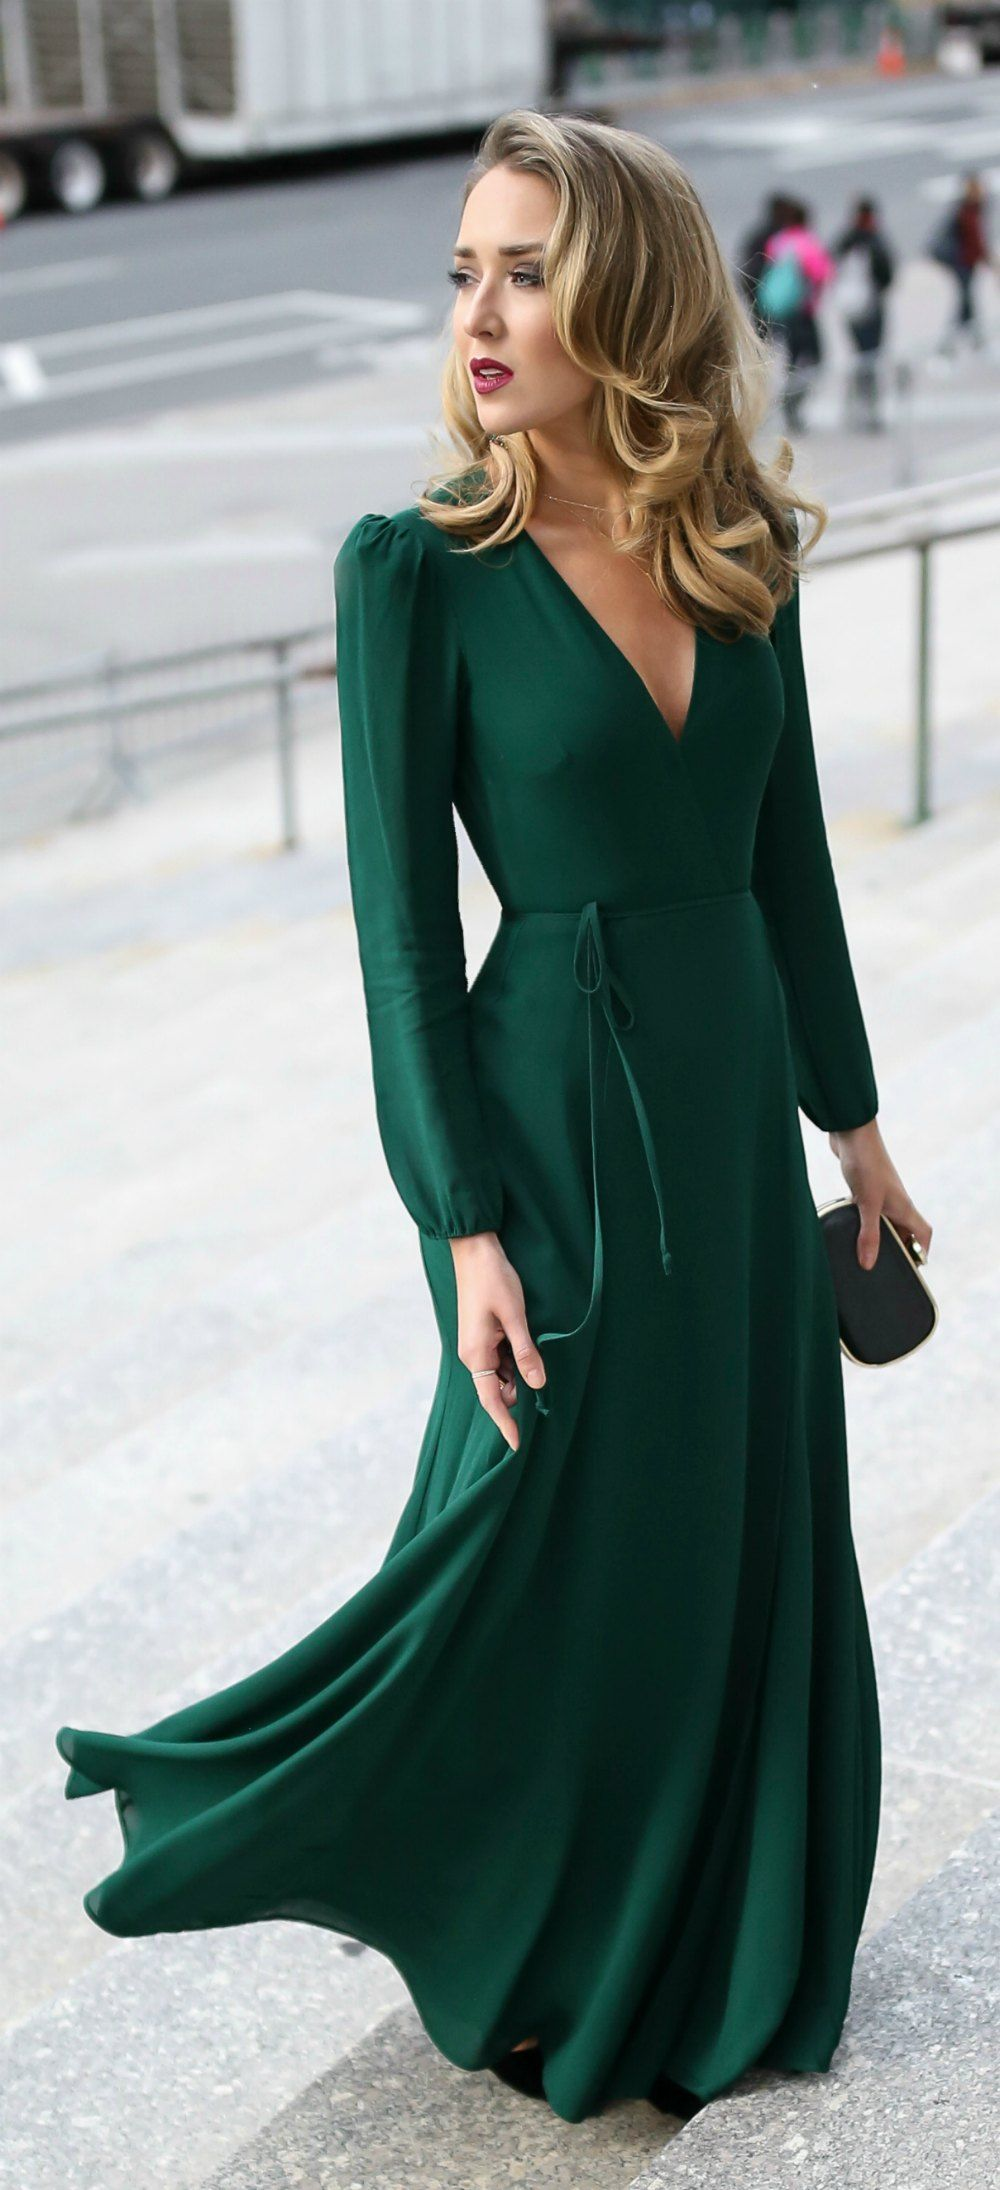 Good 30 DRESSES IN 30 DAYS: Black Tie Wedding Guest // Emerald Green Long Sleeve  Floor Length Wrap Dress, Black And Gold Geometric Pattern Evening Clutch,  ...